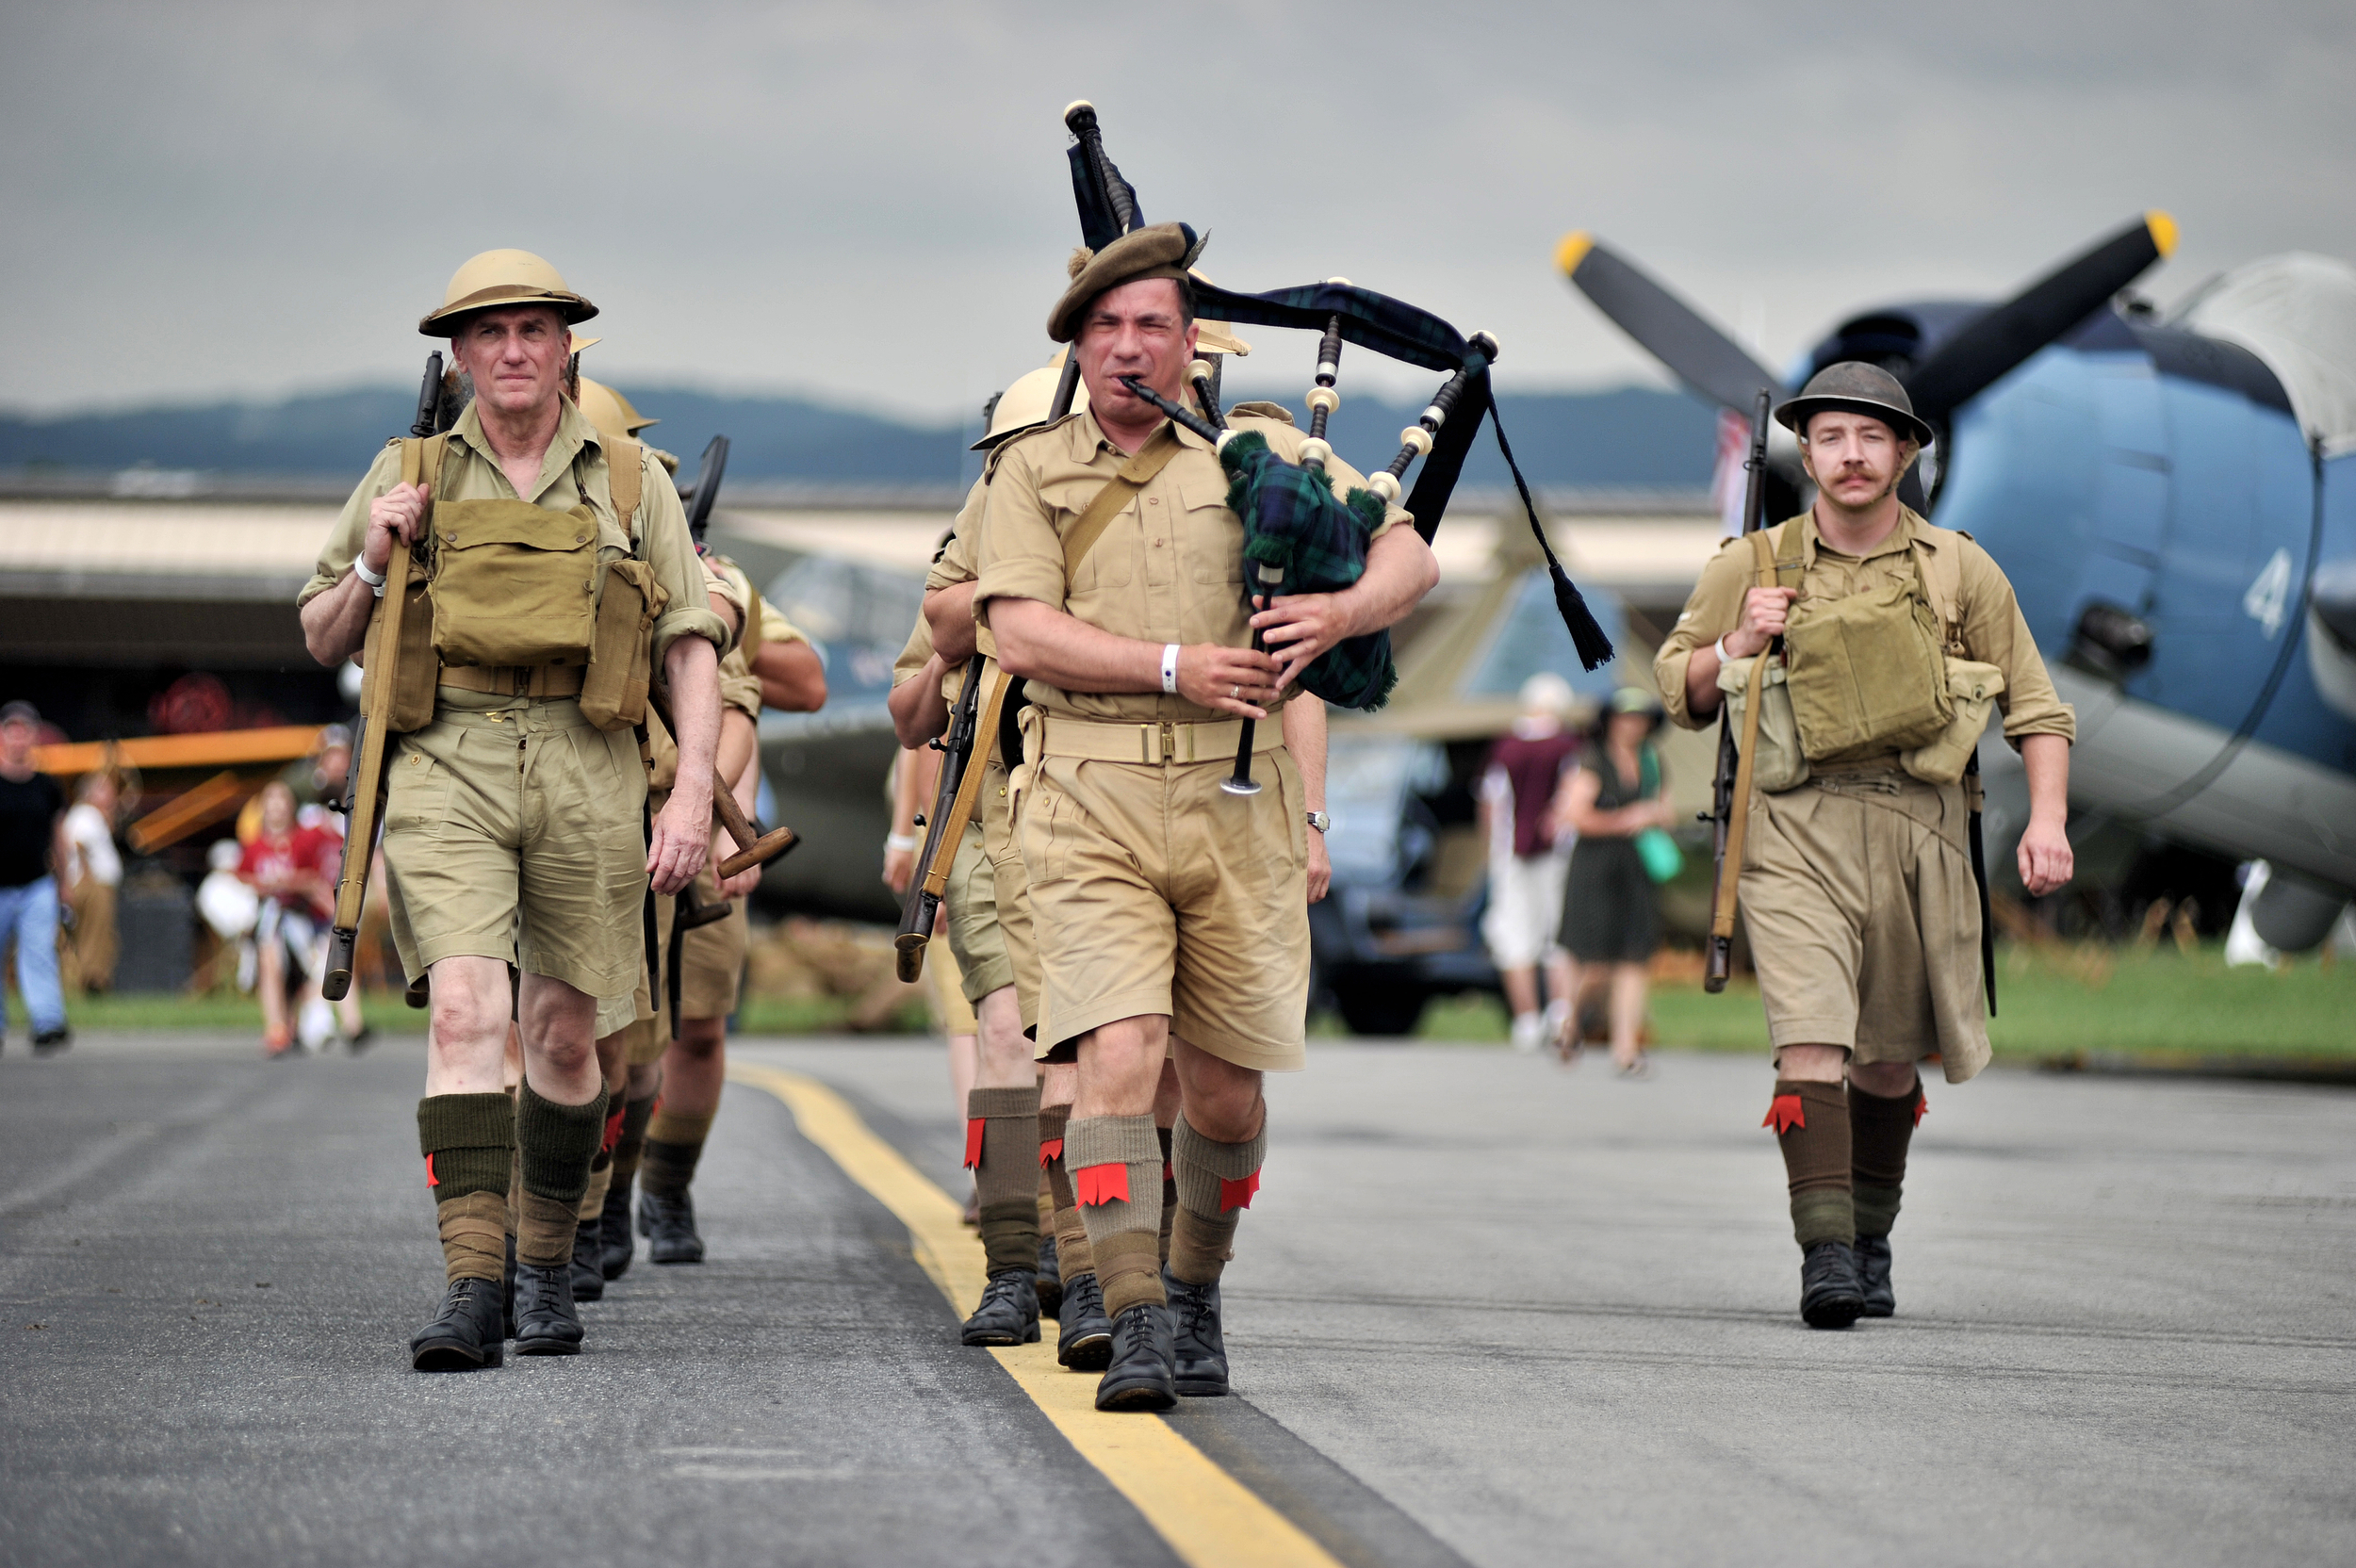 Reenactors portraying the British Highland Division at the World War II Weekend in Reading, PA, on June 3, 2016. (Reading Eagle: Sarah Stier)